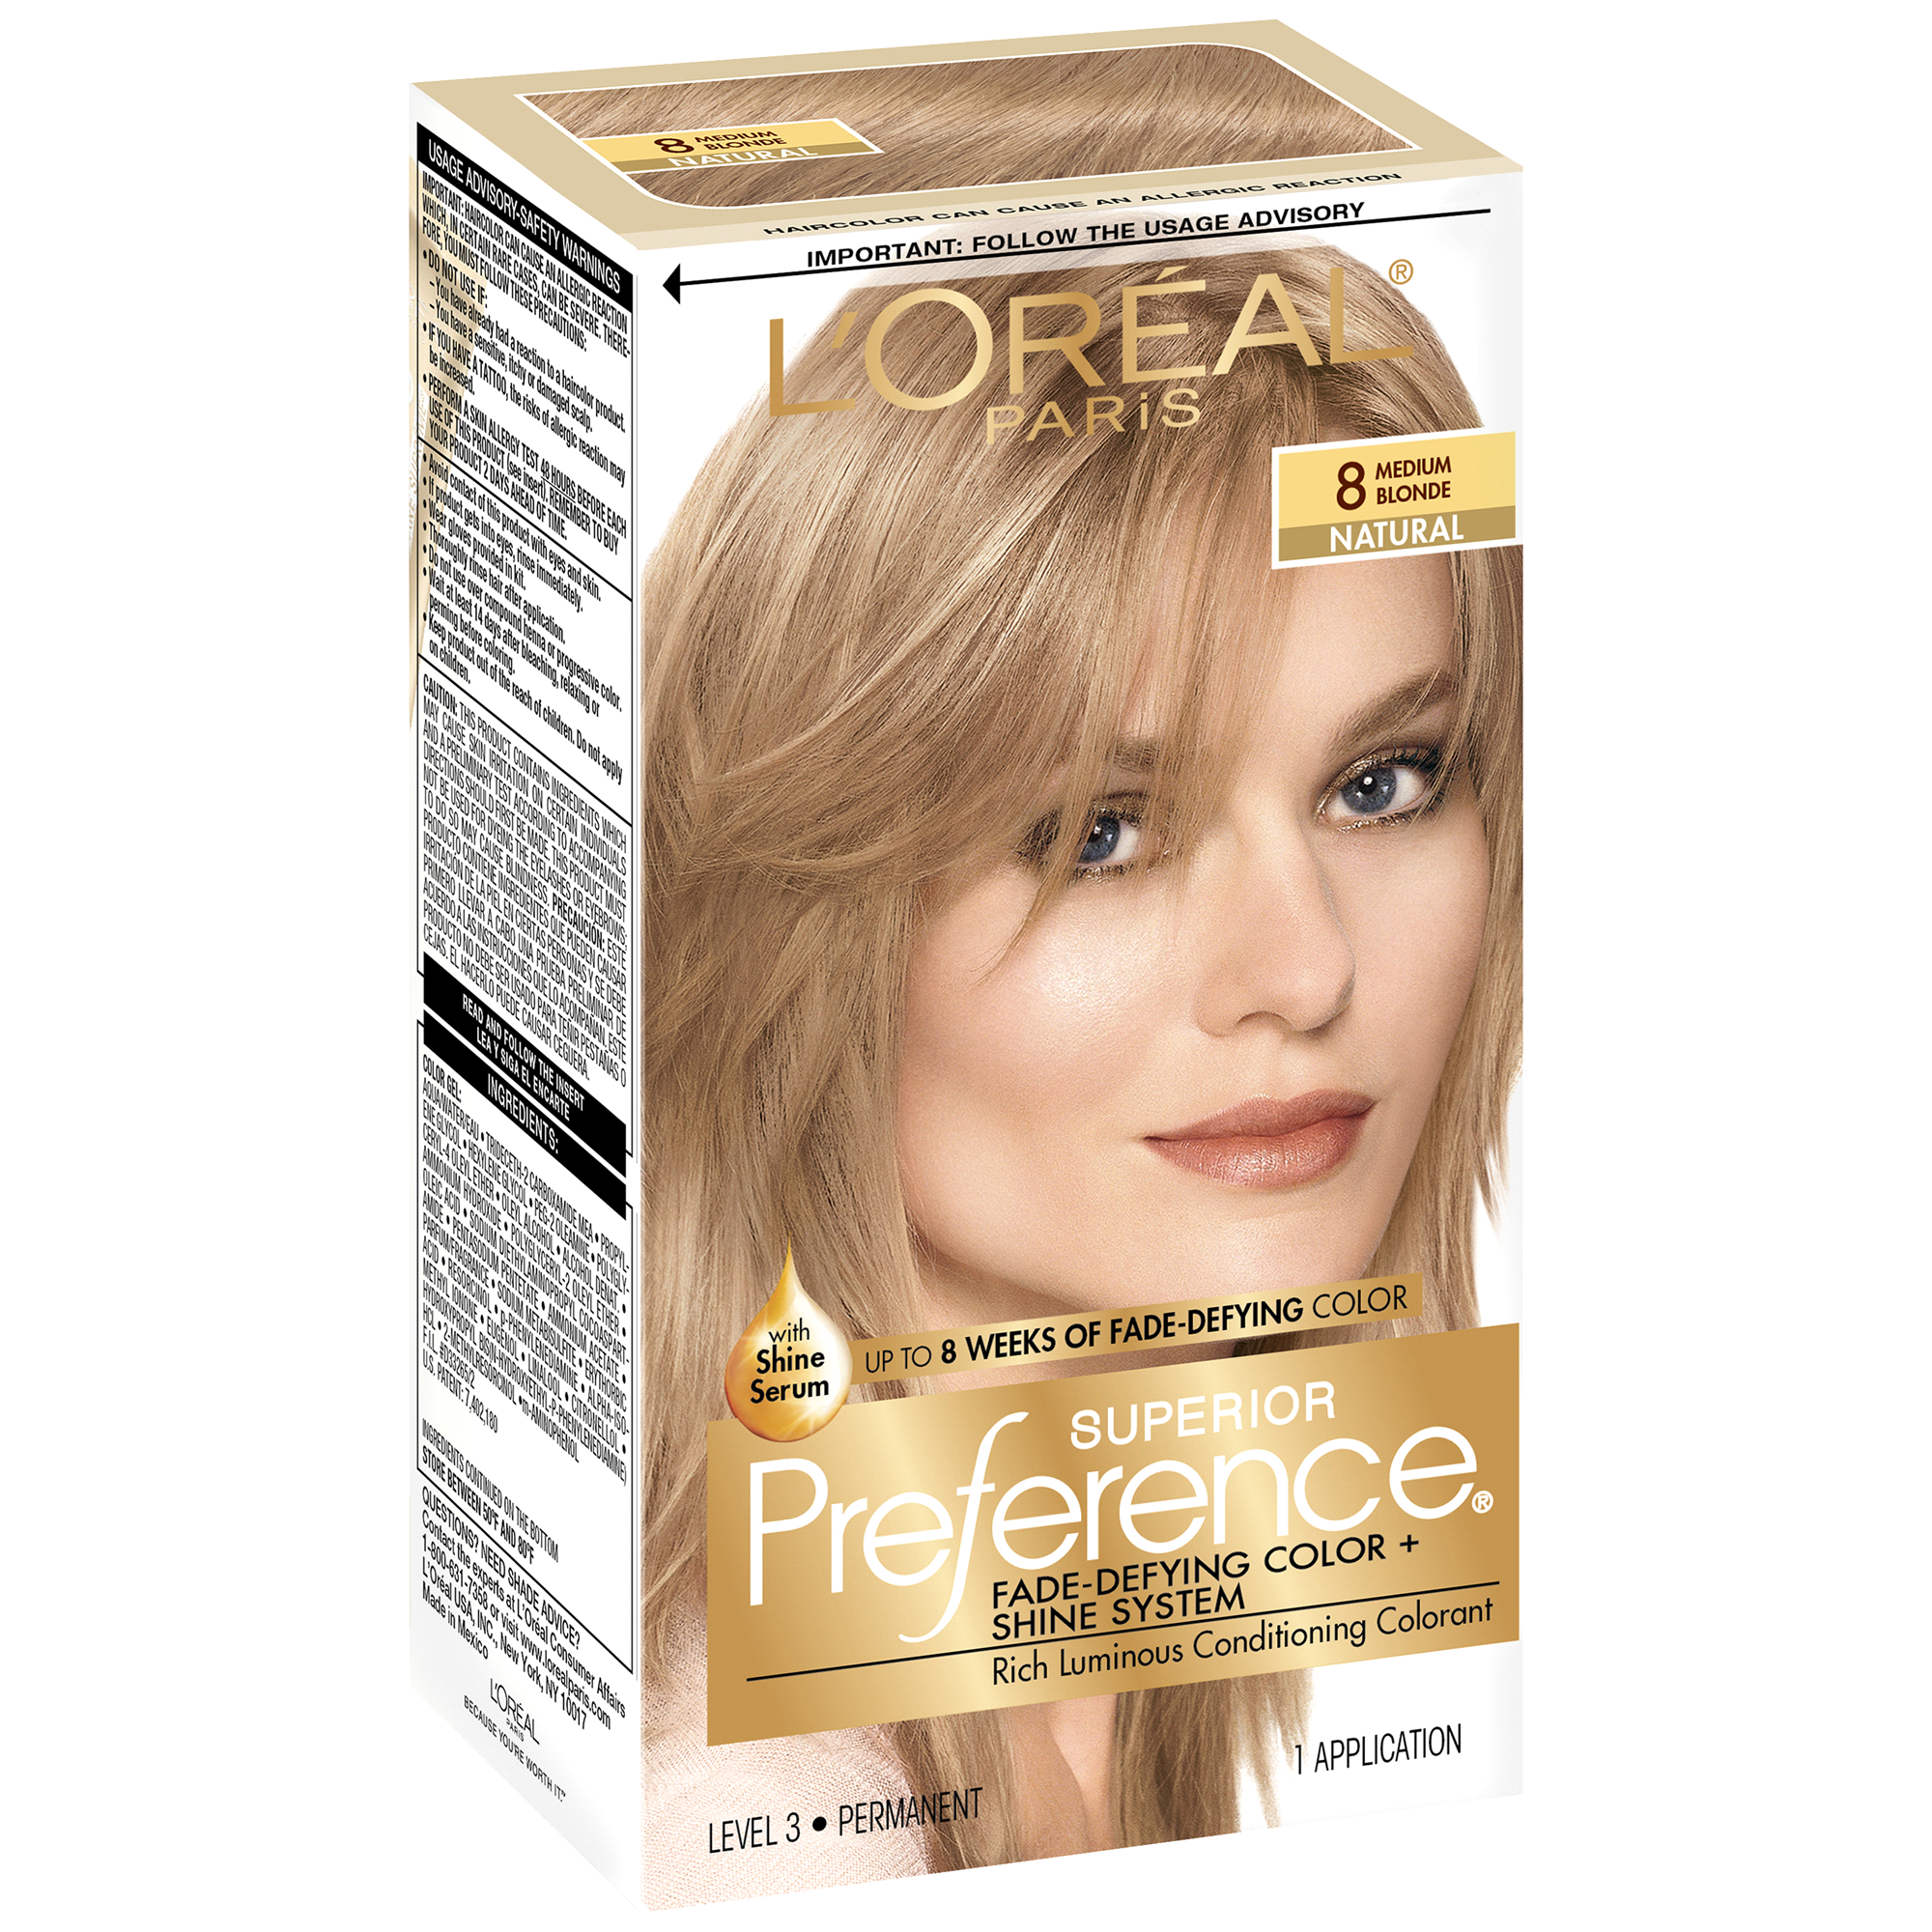 Loreal Paris Superior Preference Fade Defying Color Shine System 8